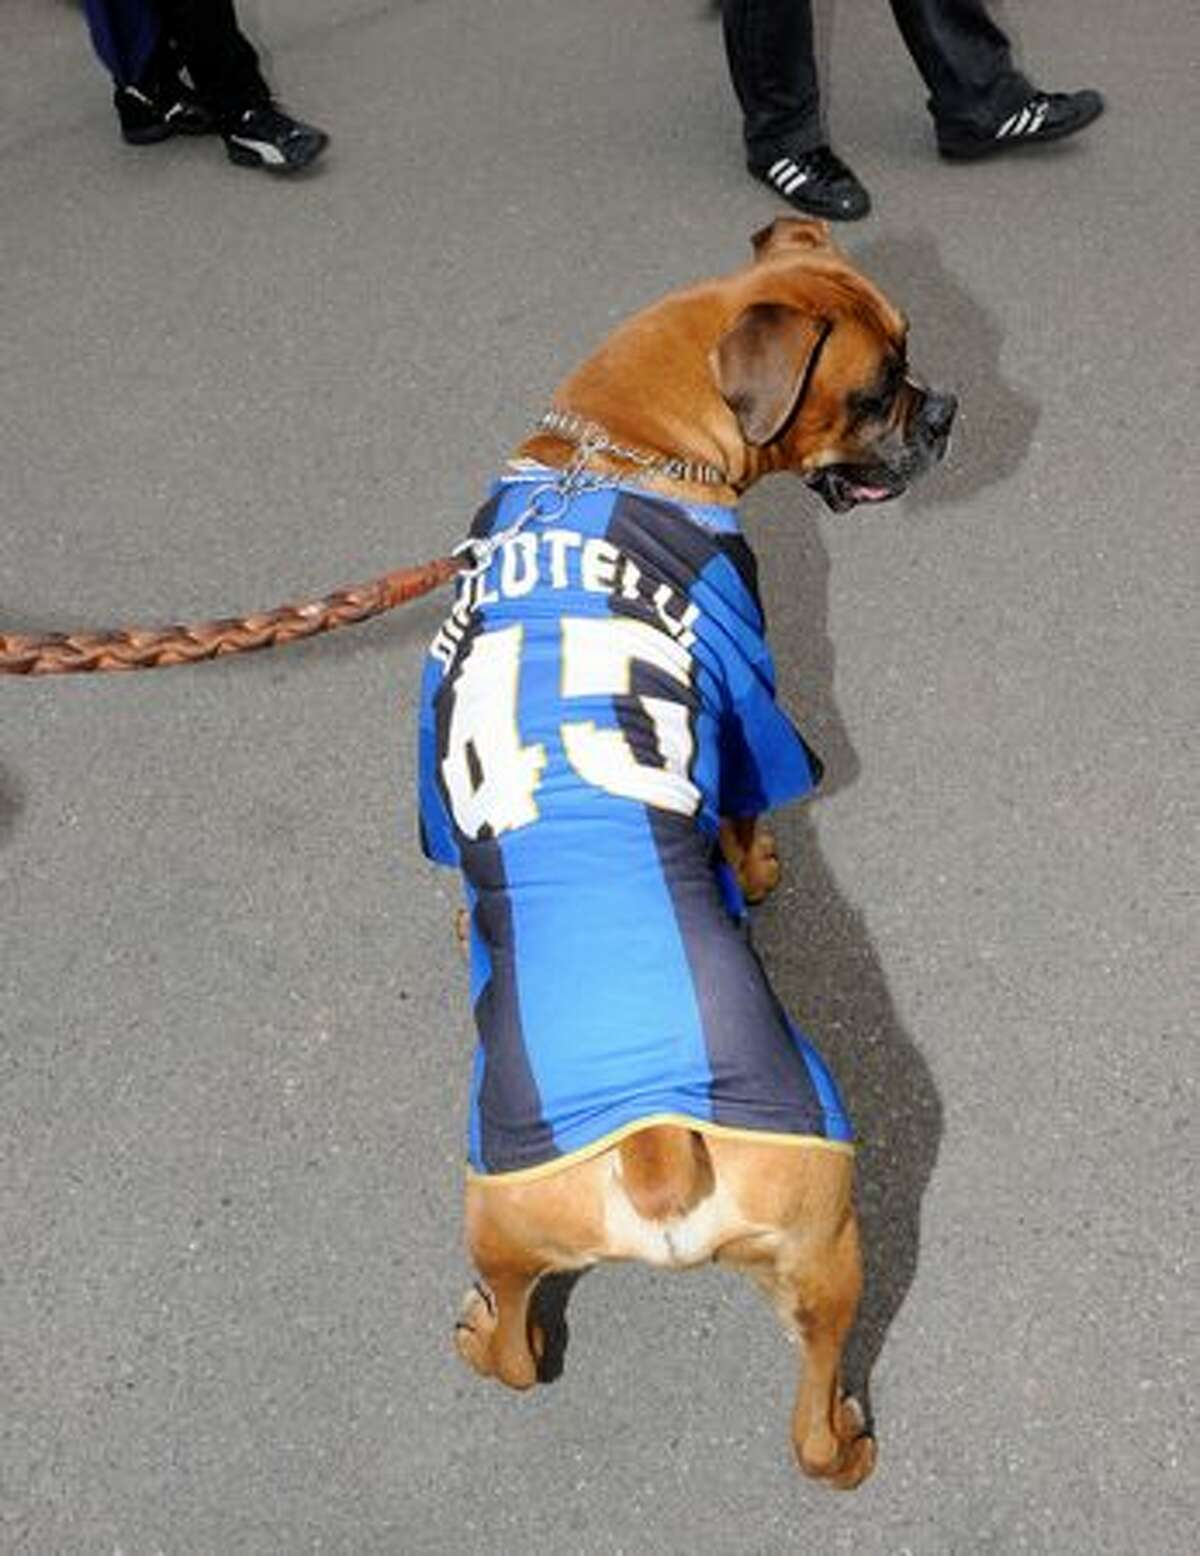 A dog wearing a FC Internazionale Milano shirt prior to the Serie A match between FC Internazionale Milano and AC Chievo Verona at Stadio Giuseppe Meazza in Milan, Italy.